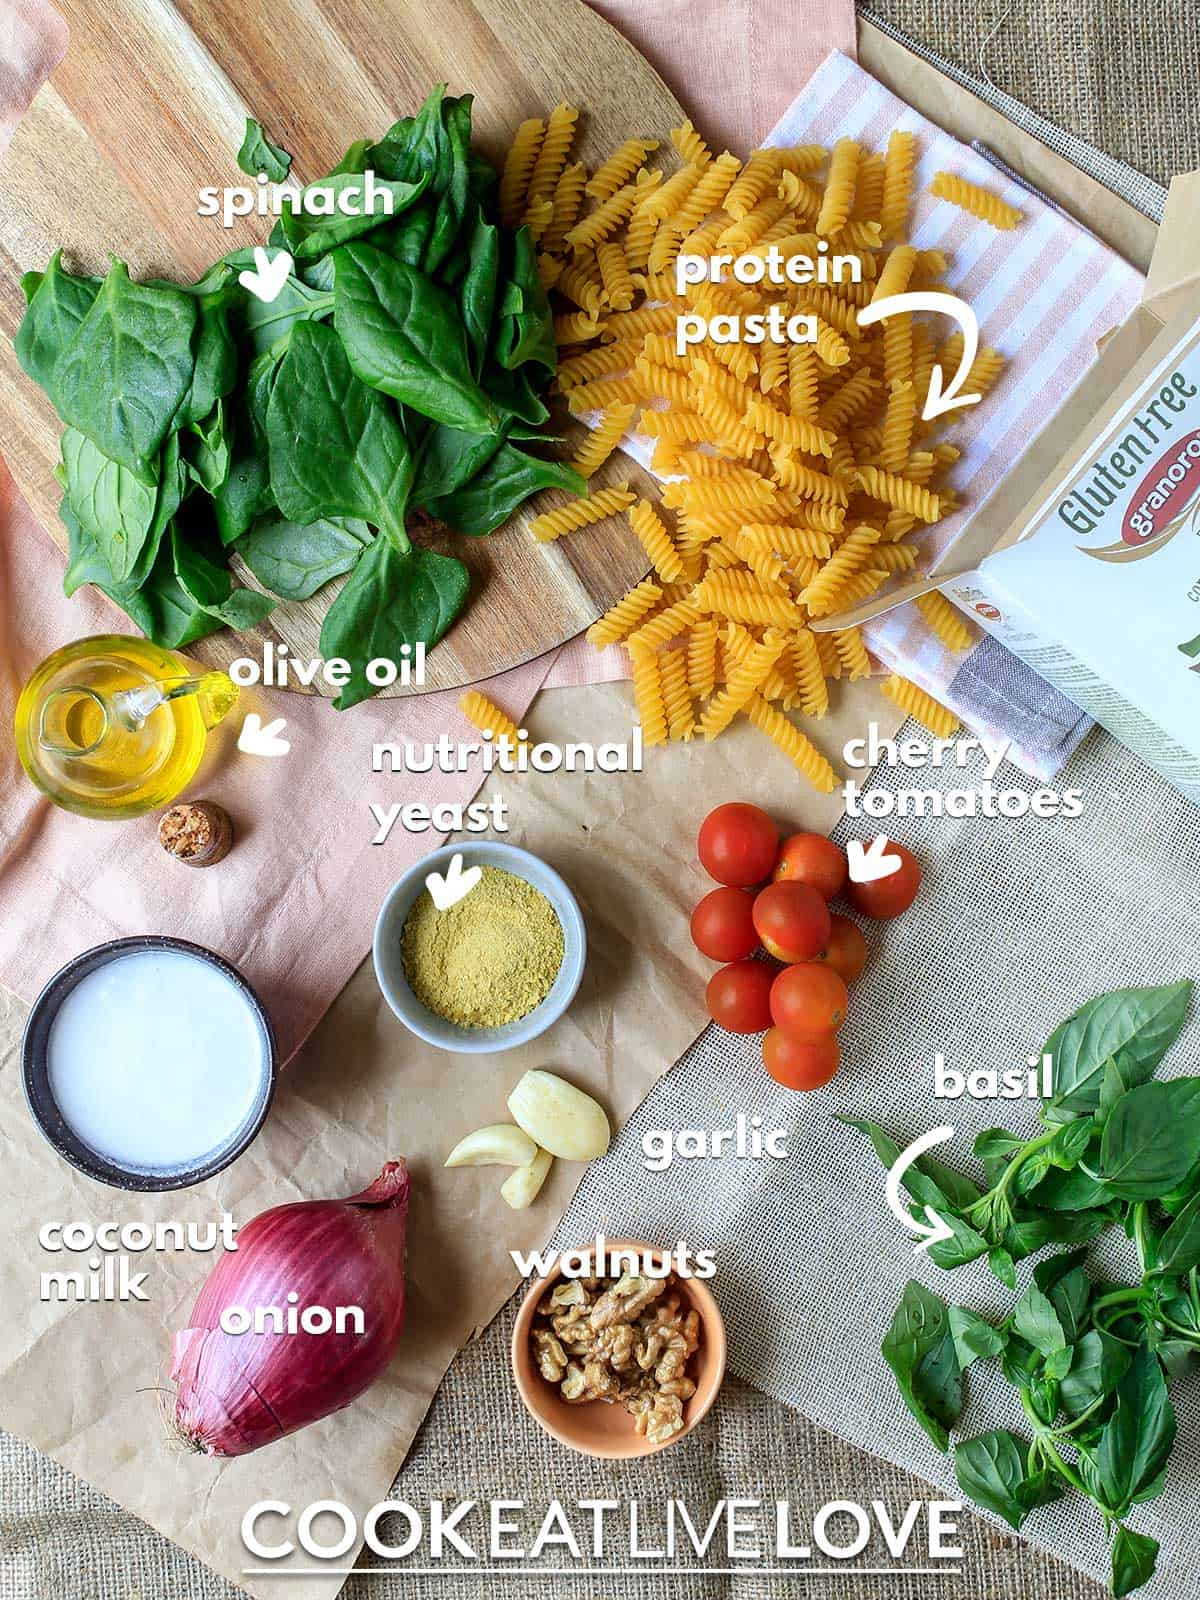 Ingredients to make spinach pesto pasta on table with text labels